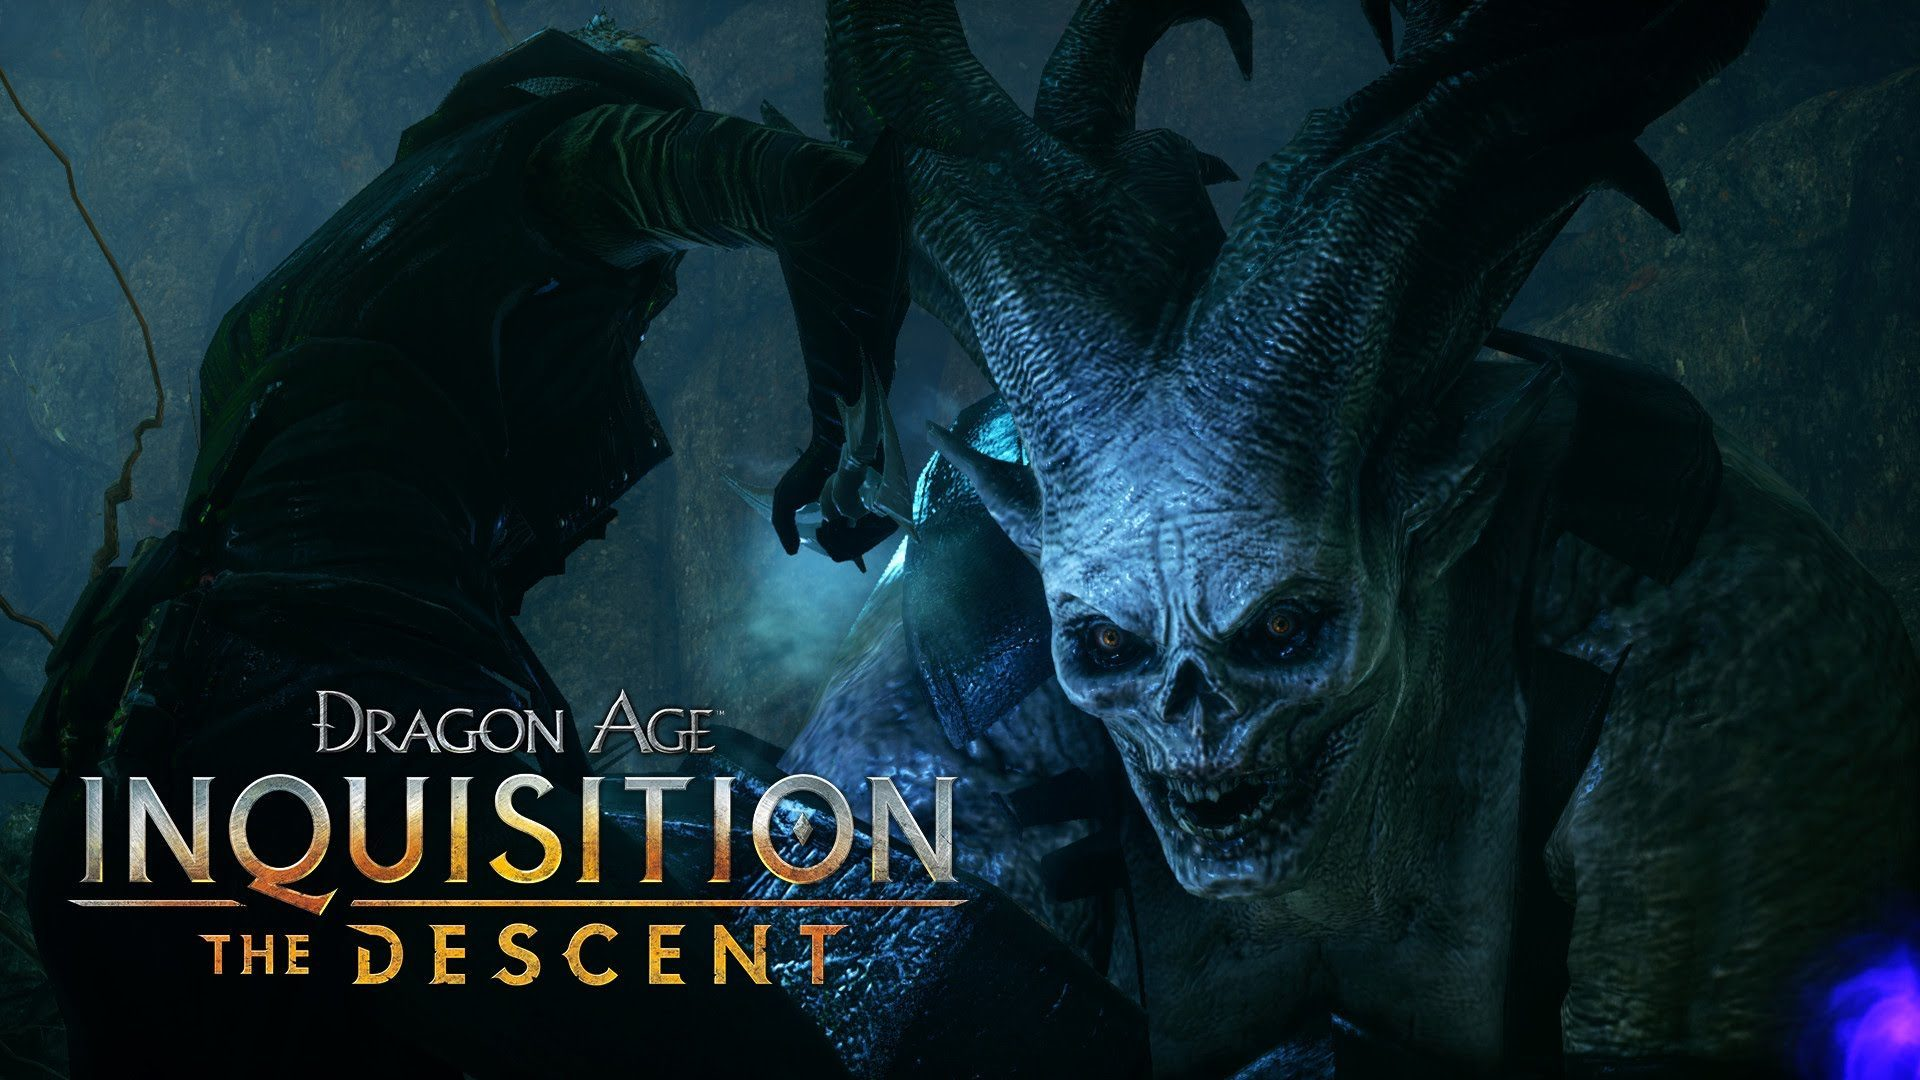 Dragon Age: Inquistion - The Descent